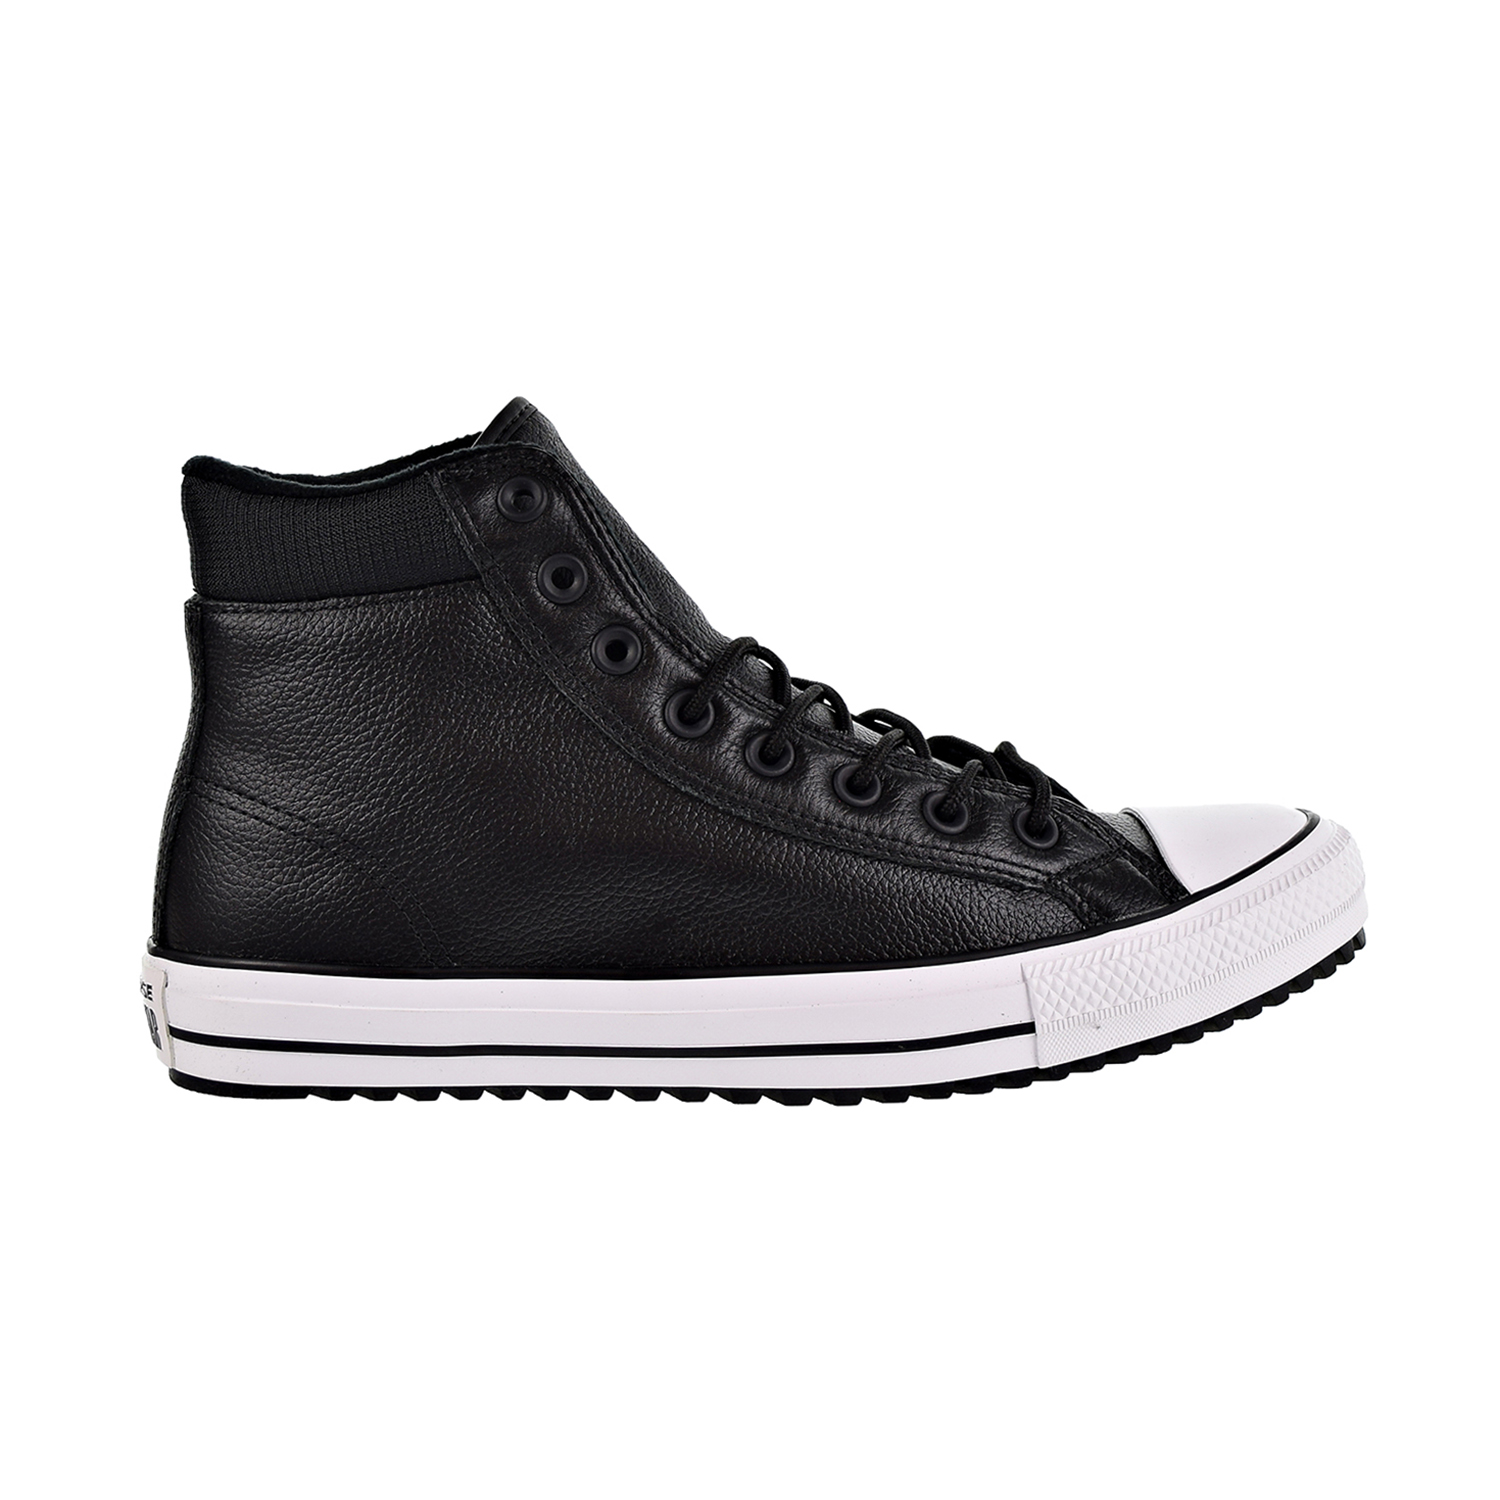 Details about Converse Chuck Taylor All Star PC Leather UnisexMen's Boots BlackWhite 162415C